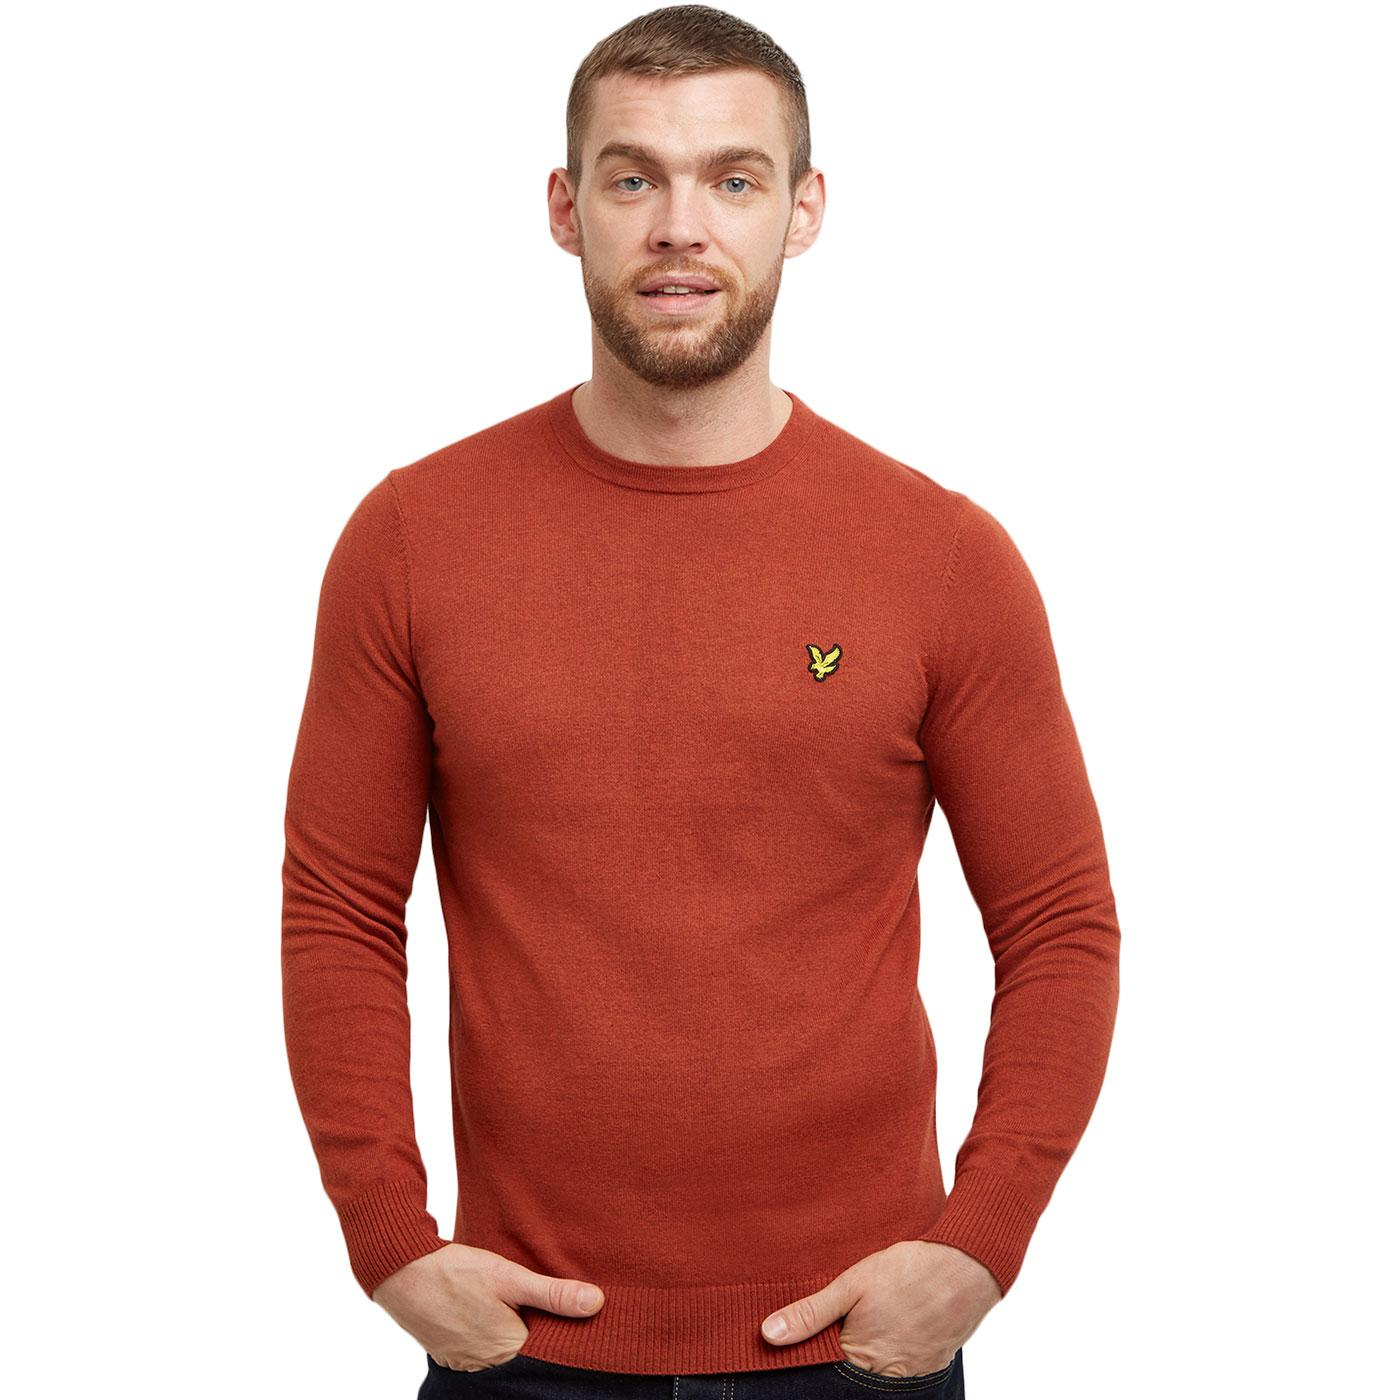 LYLE AND SCOTT Retro Merino Wool Knitted Jumper T